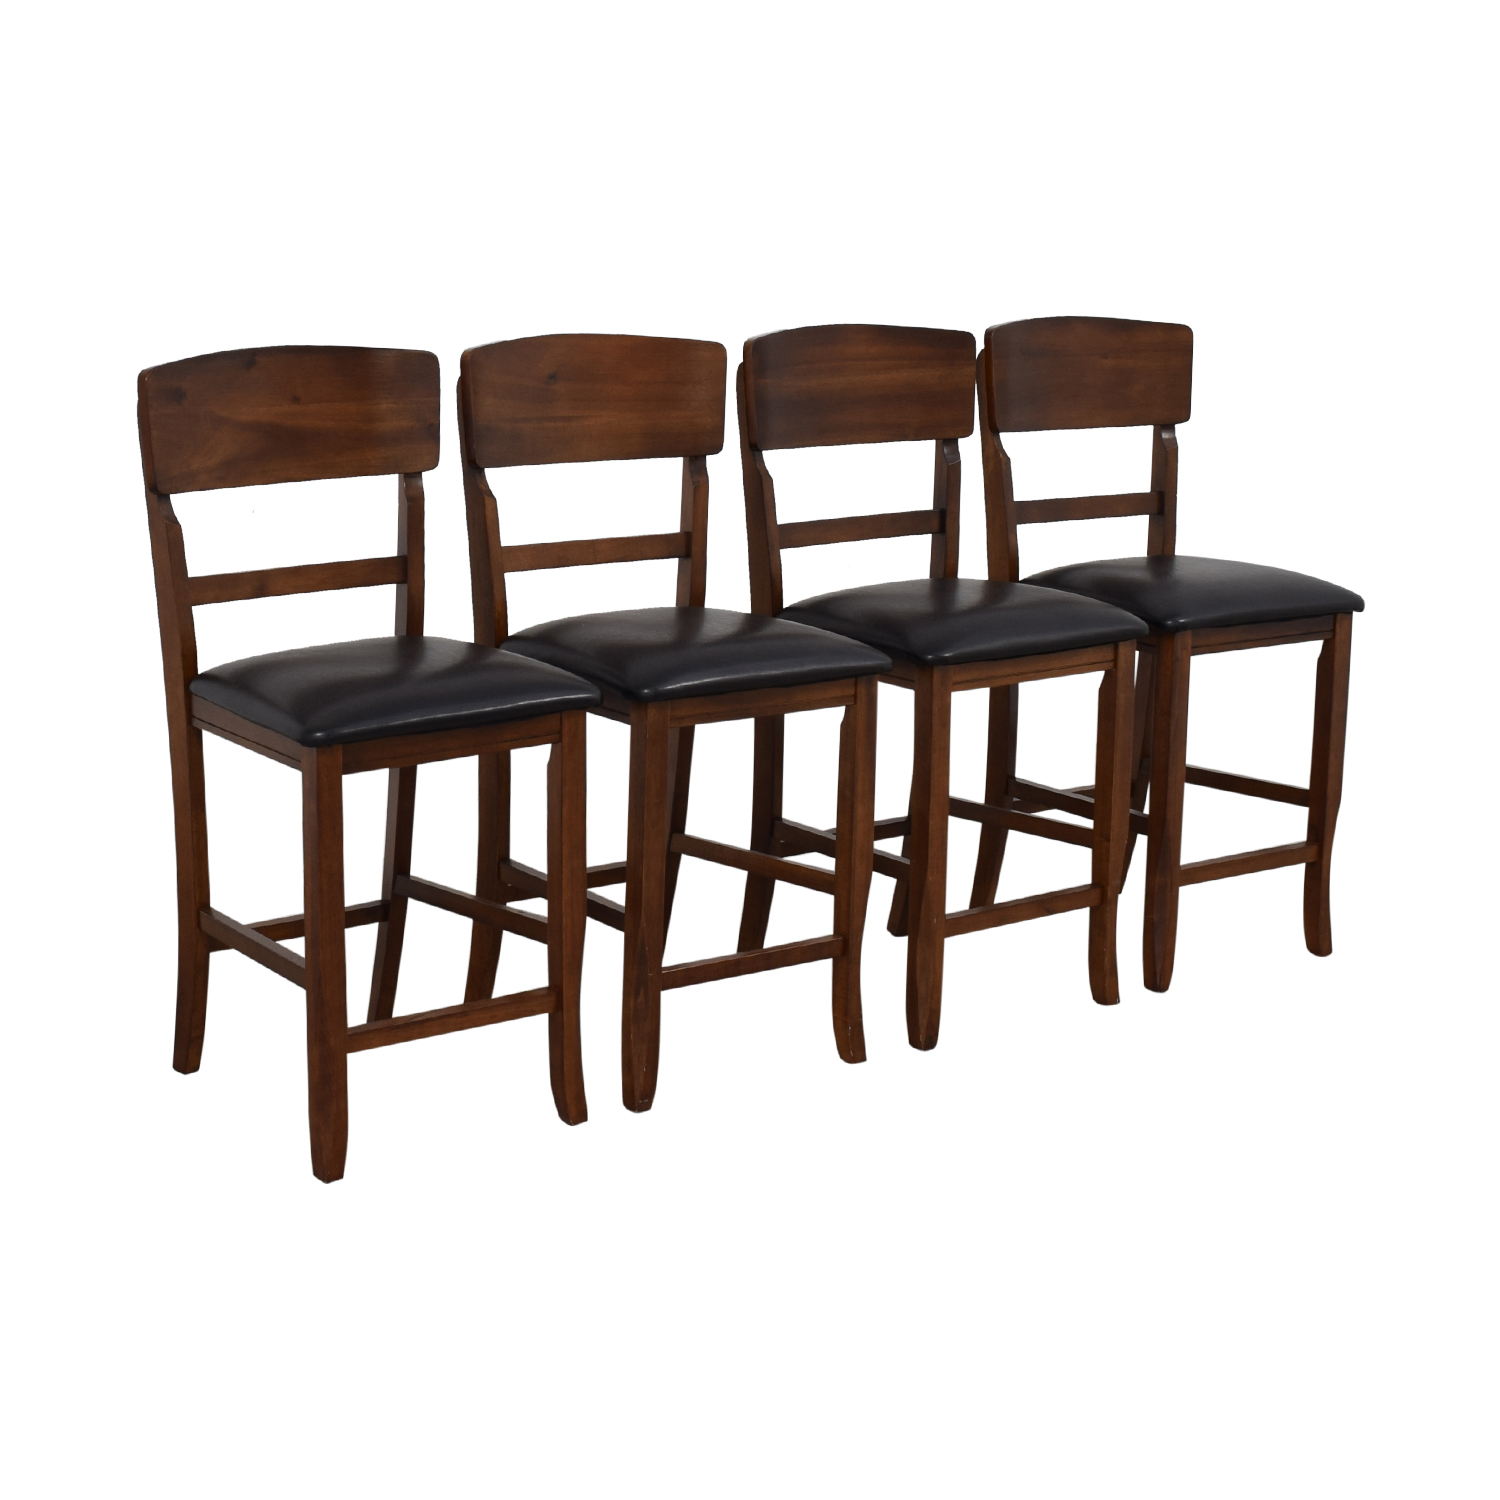 Living Spaces Living Spaces Counter Stools Chairs